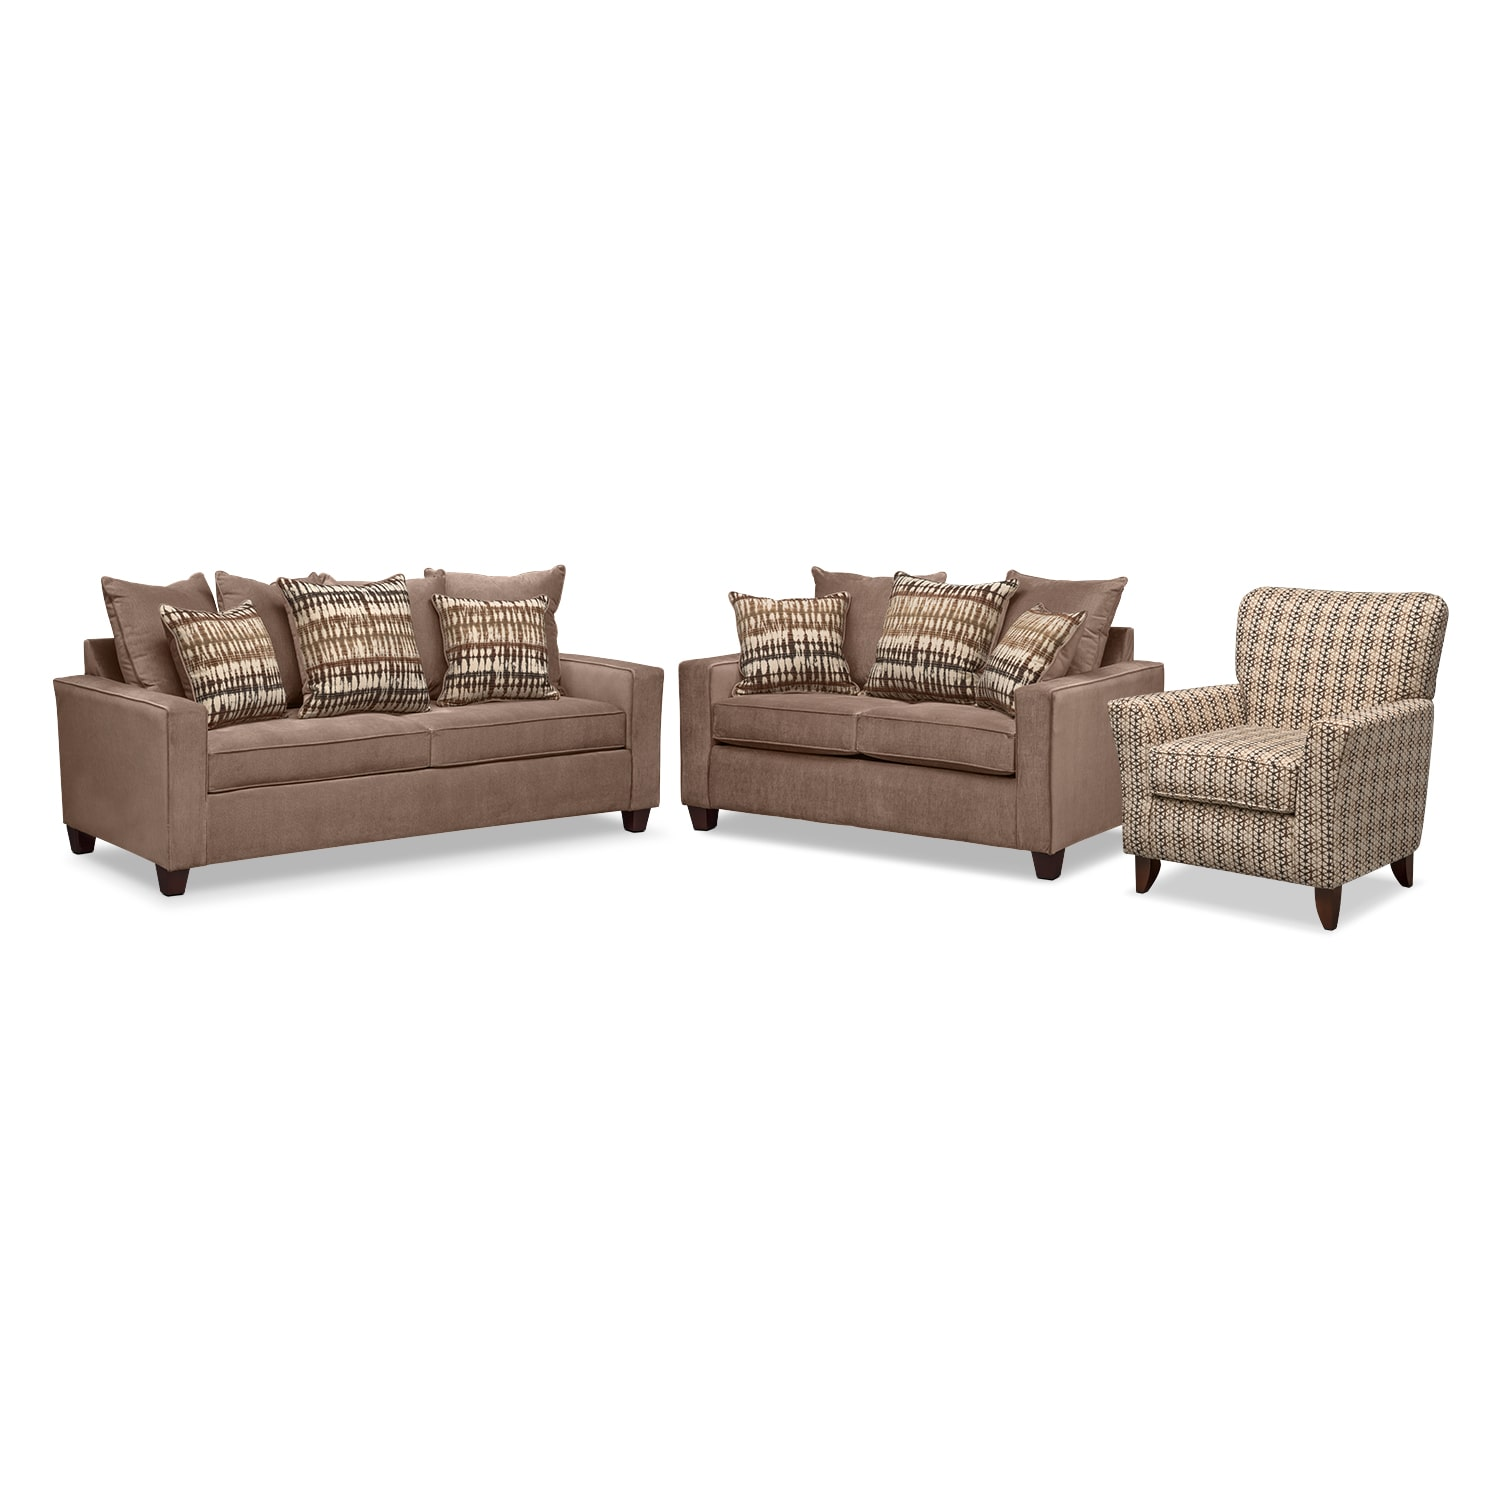 Living Room Furniture - Bryden Queen Innerspring Sleeper Sofa, Loveseat and Accent Chair Set - Chocolate